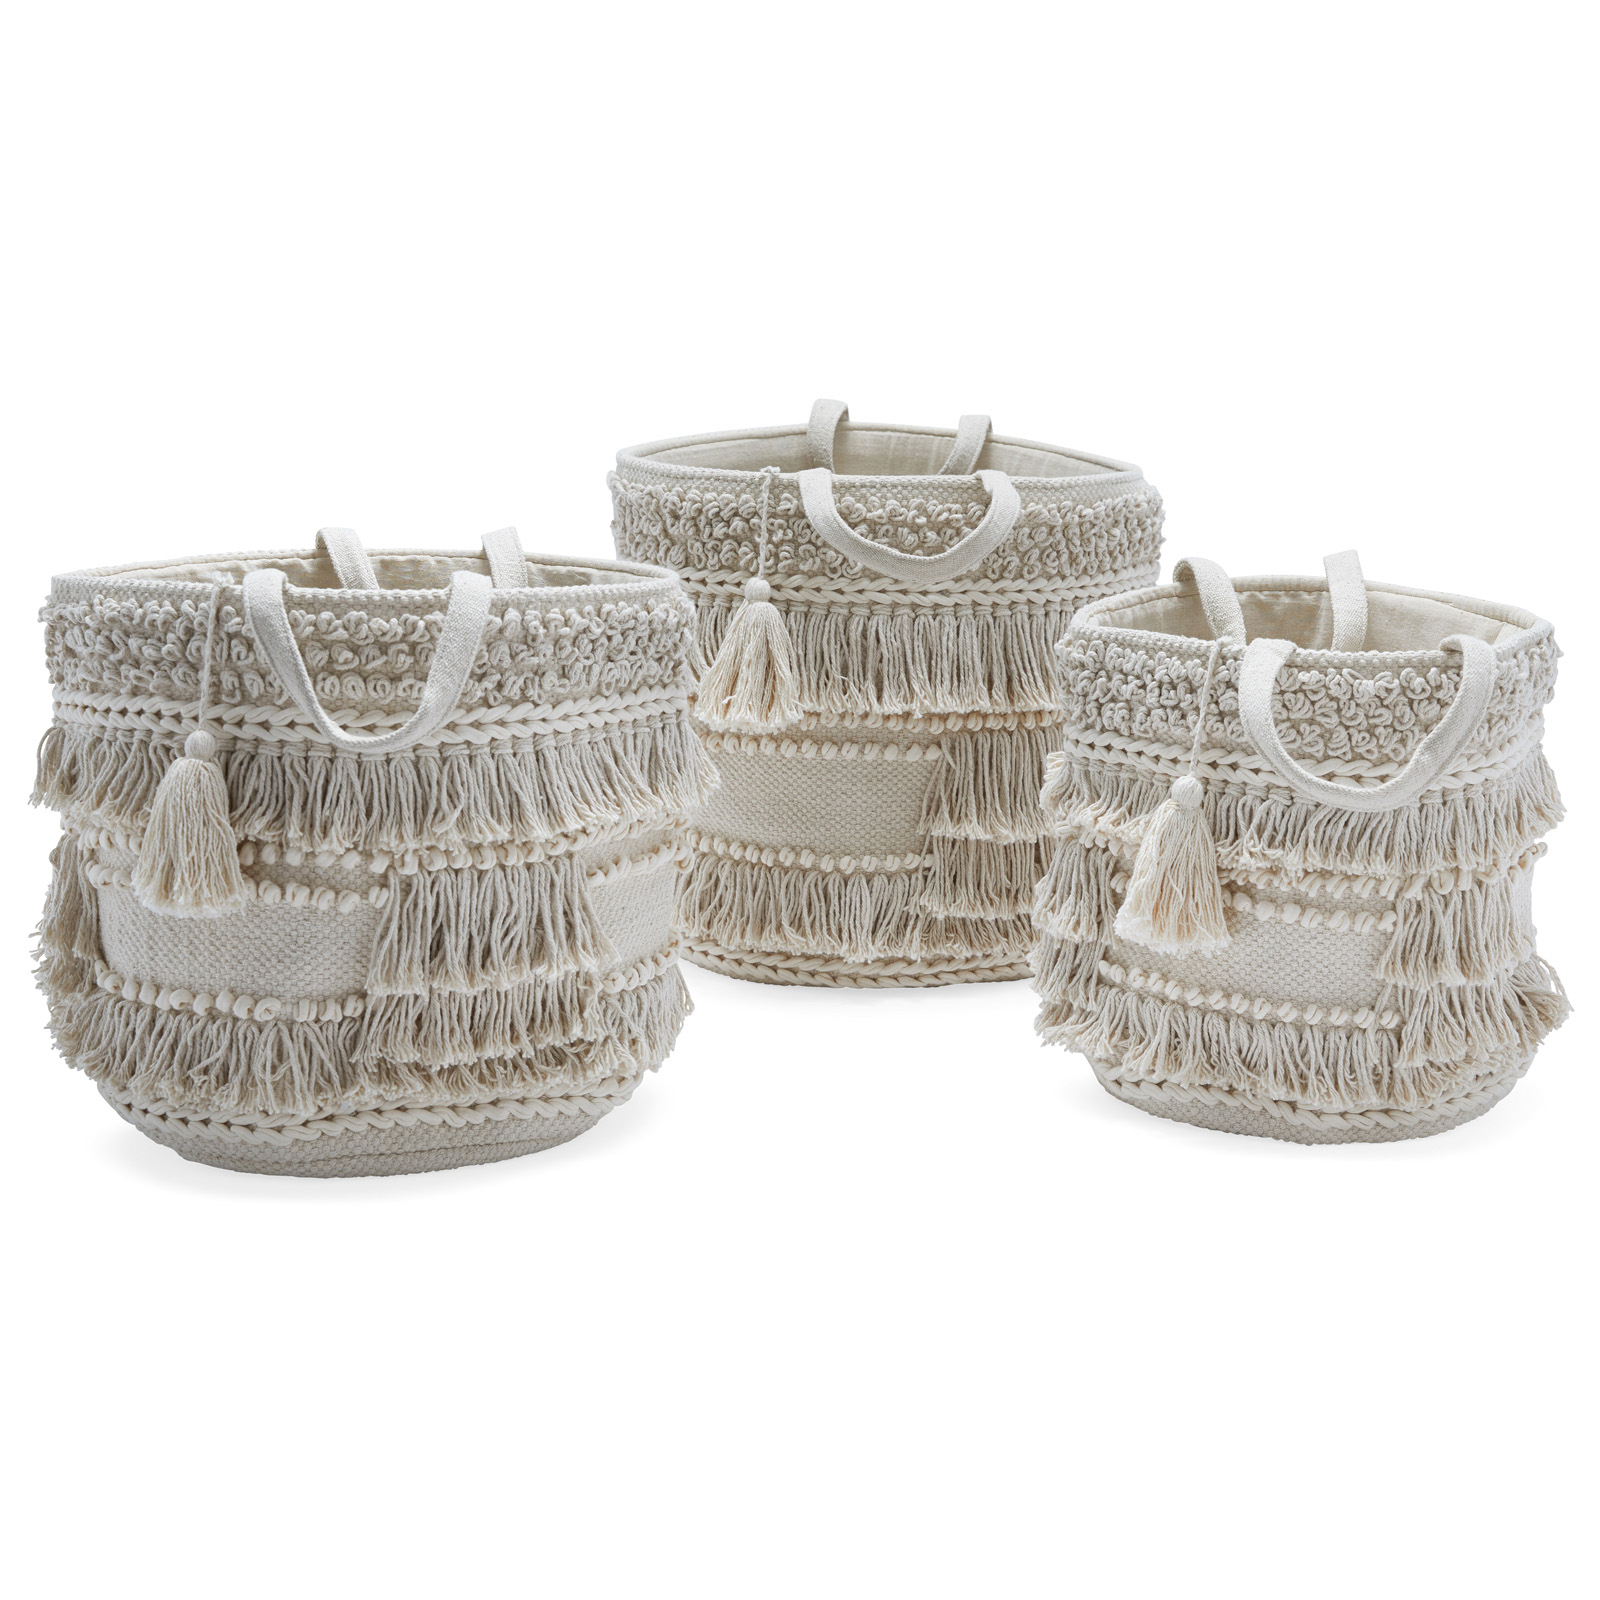 Hand Woven Macrame 3 Piece Basket Set, Naturaldrew within 4 Piece Handwoven Wheel Wall Decor Sets (Image 21 of 30)